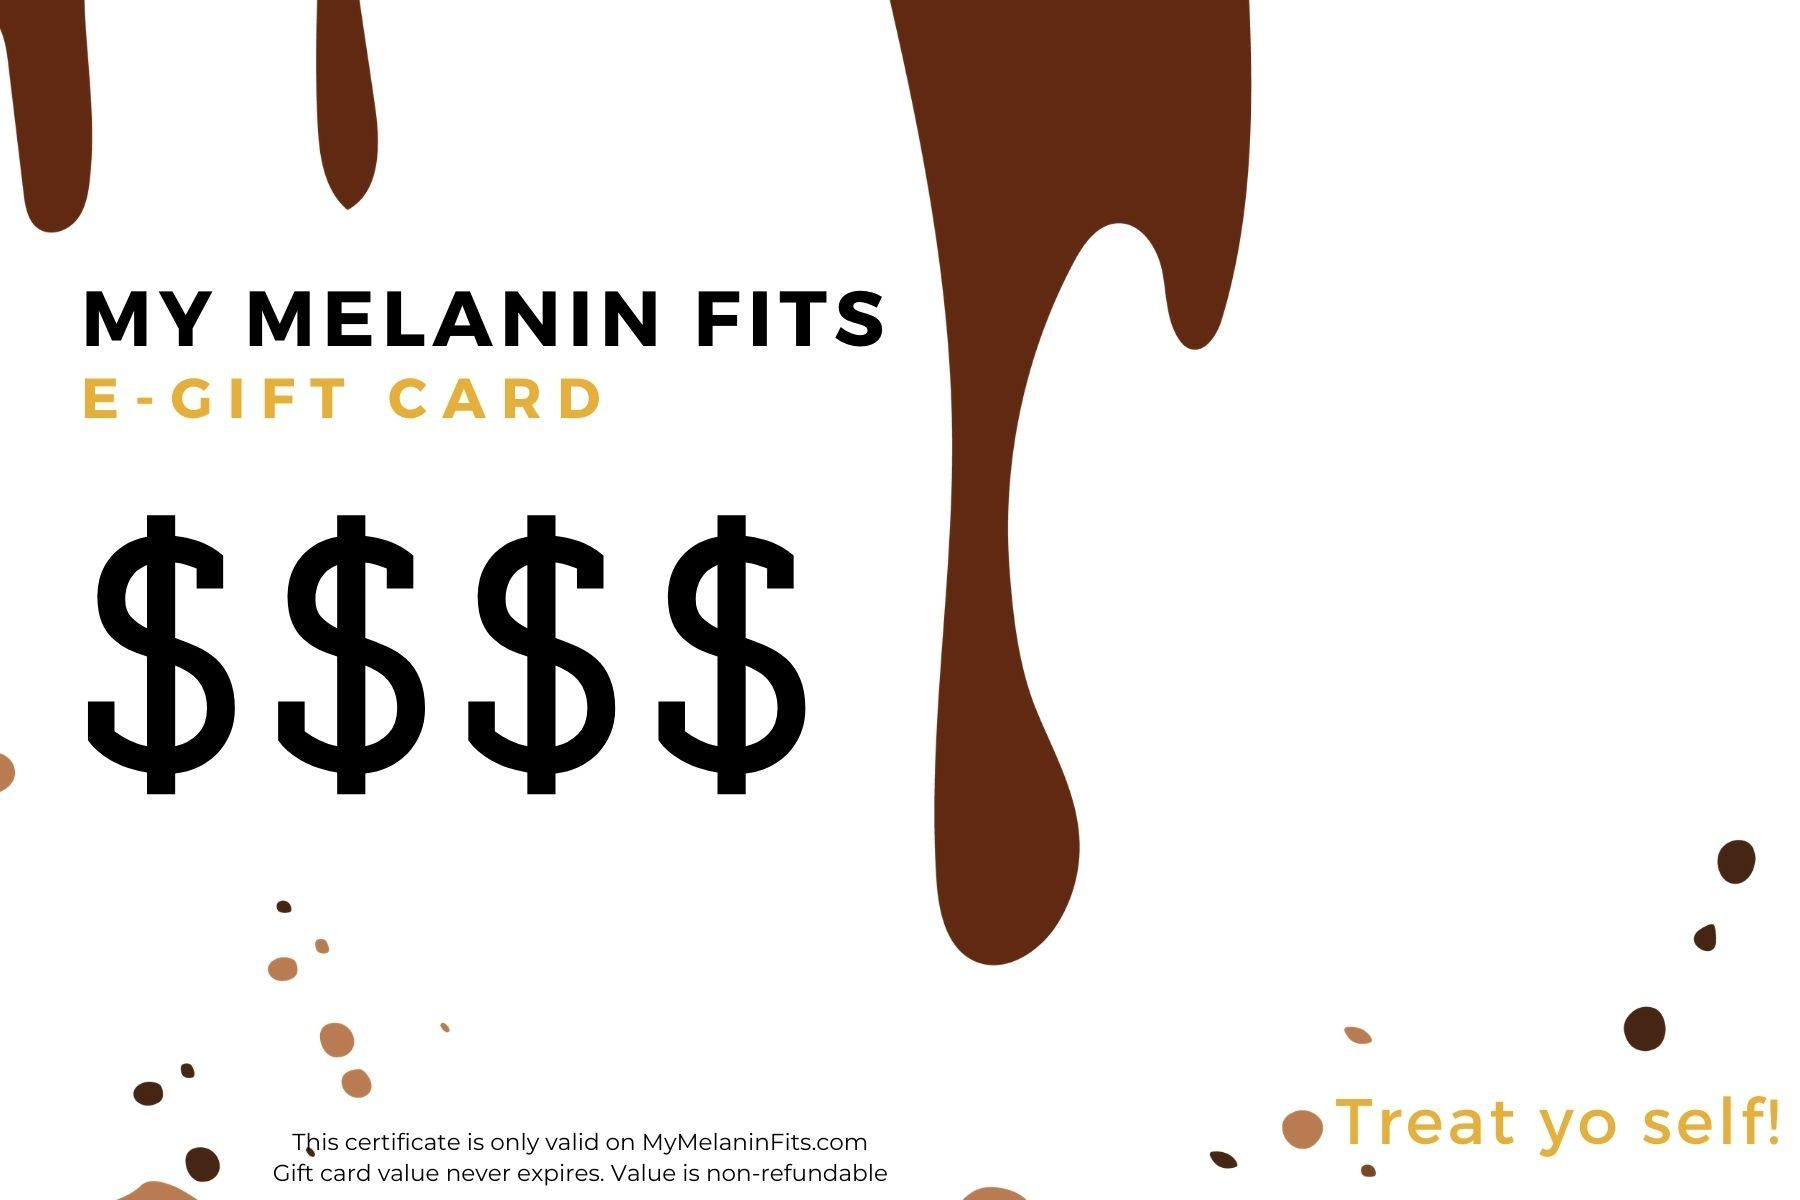 My Melanin Fits e-Gift Card